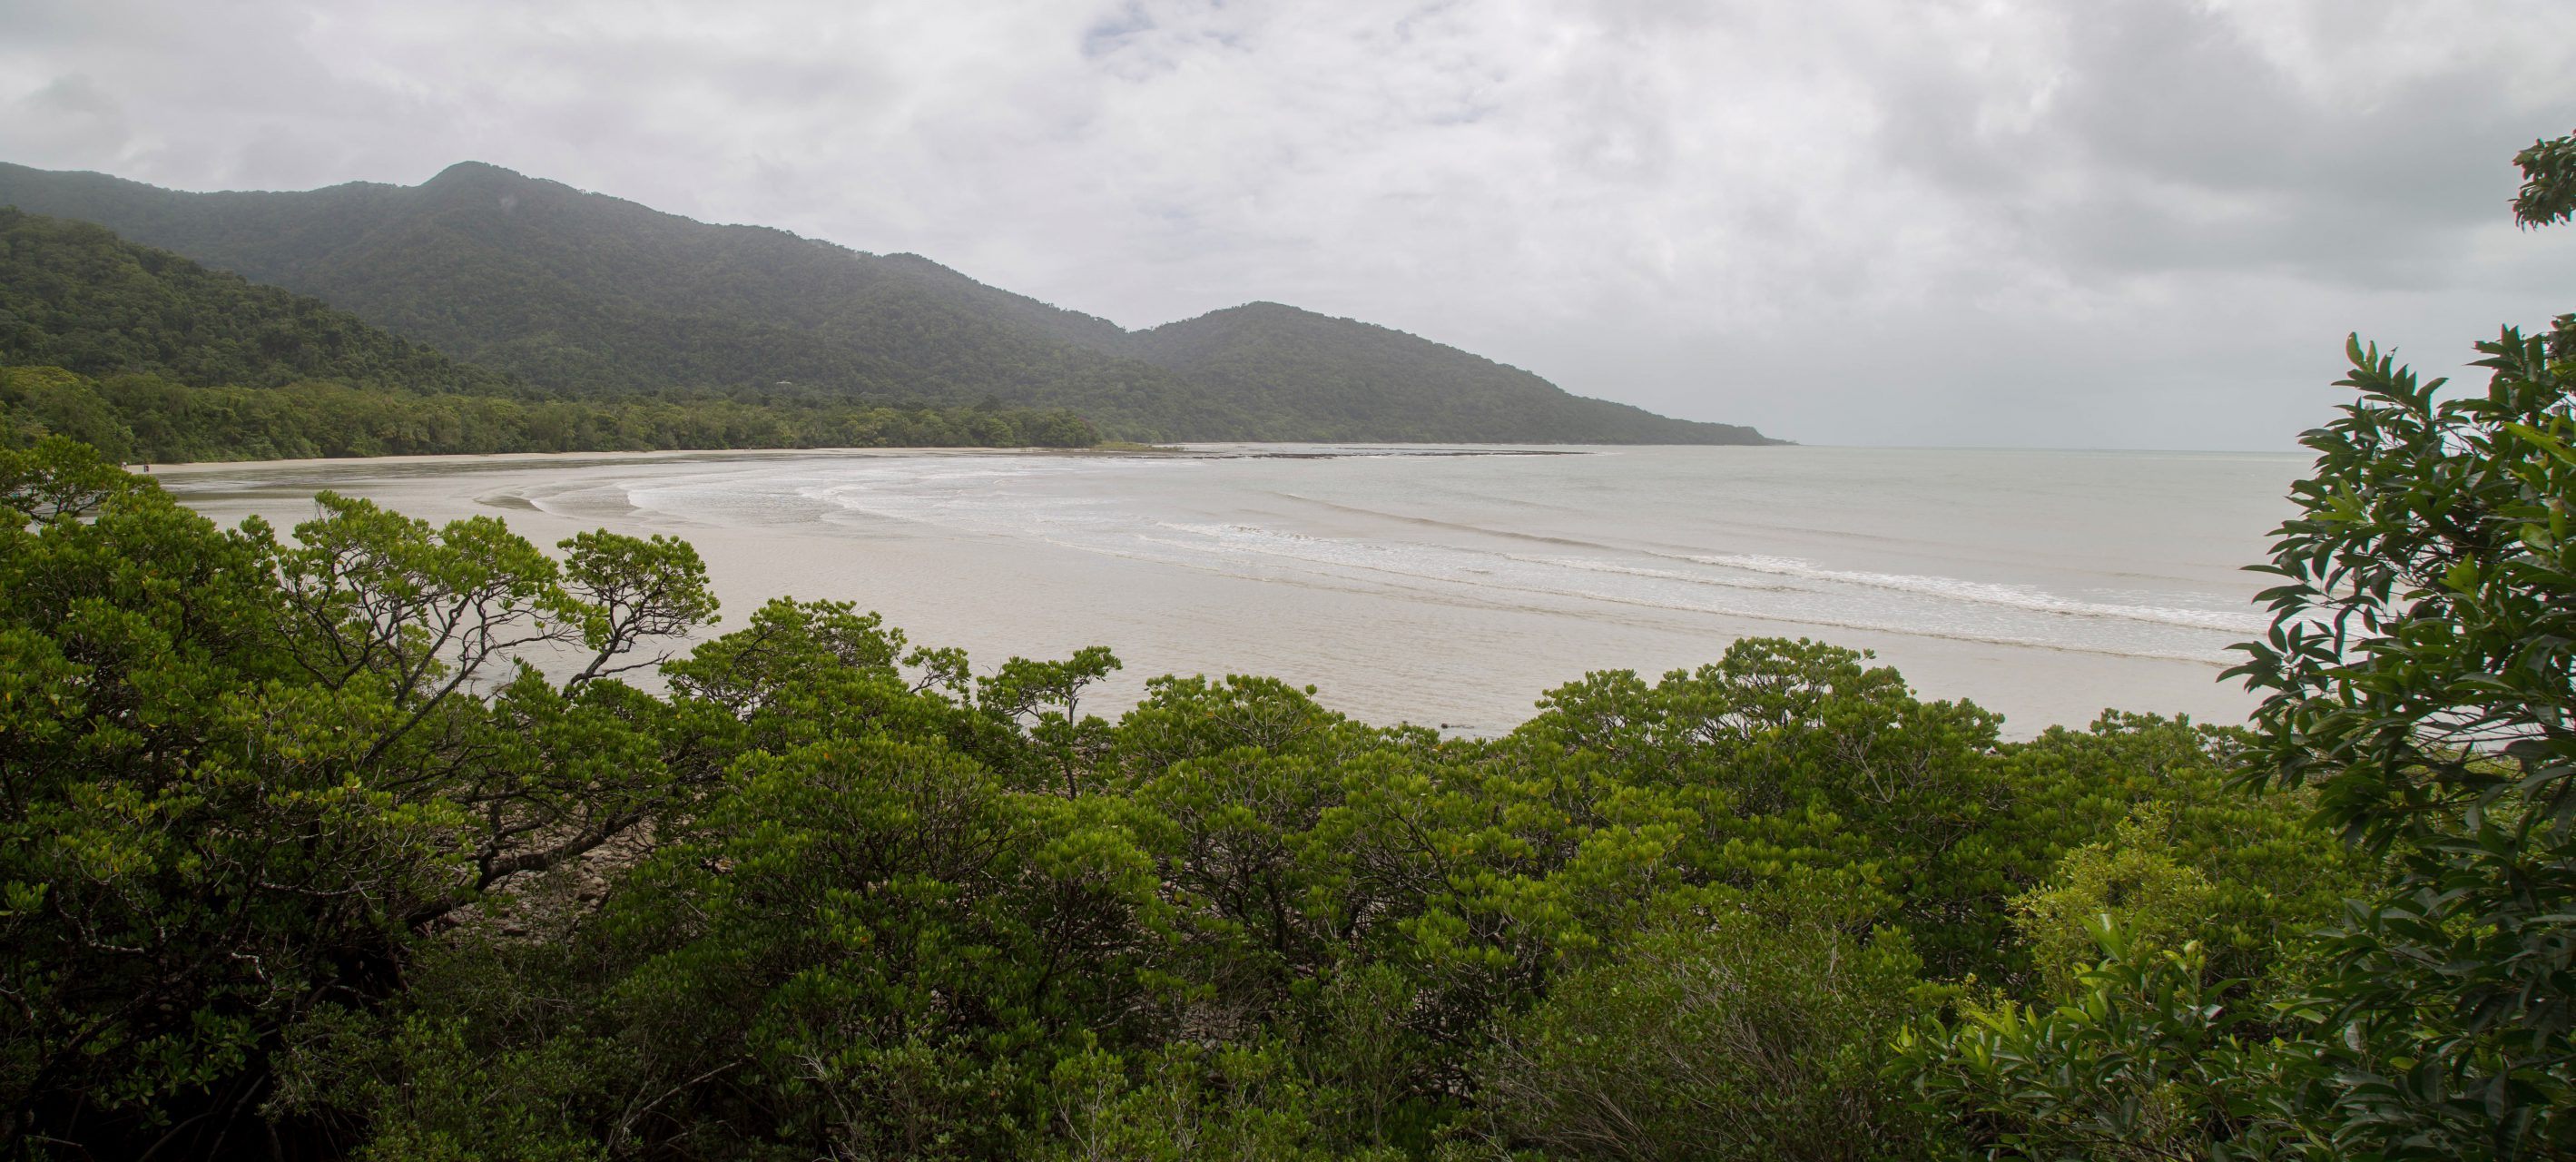 Cape Tribulation, named by Cpt Cook after running his ship on a coral reef here, Daintree National Park